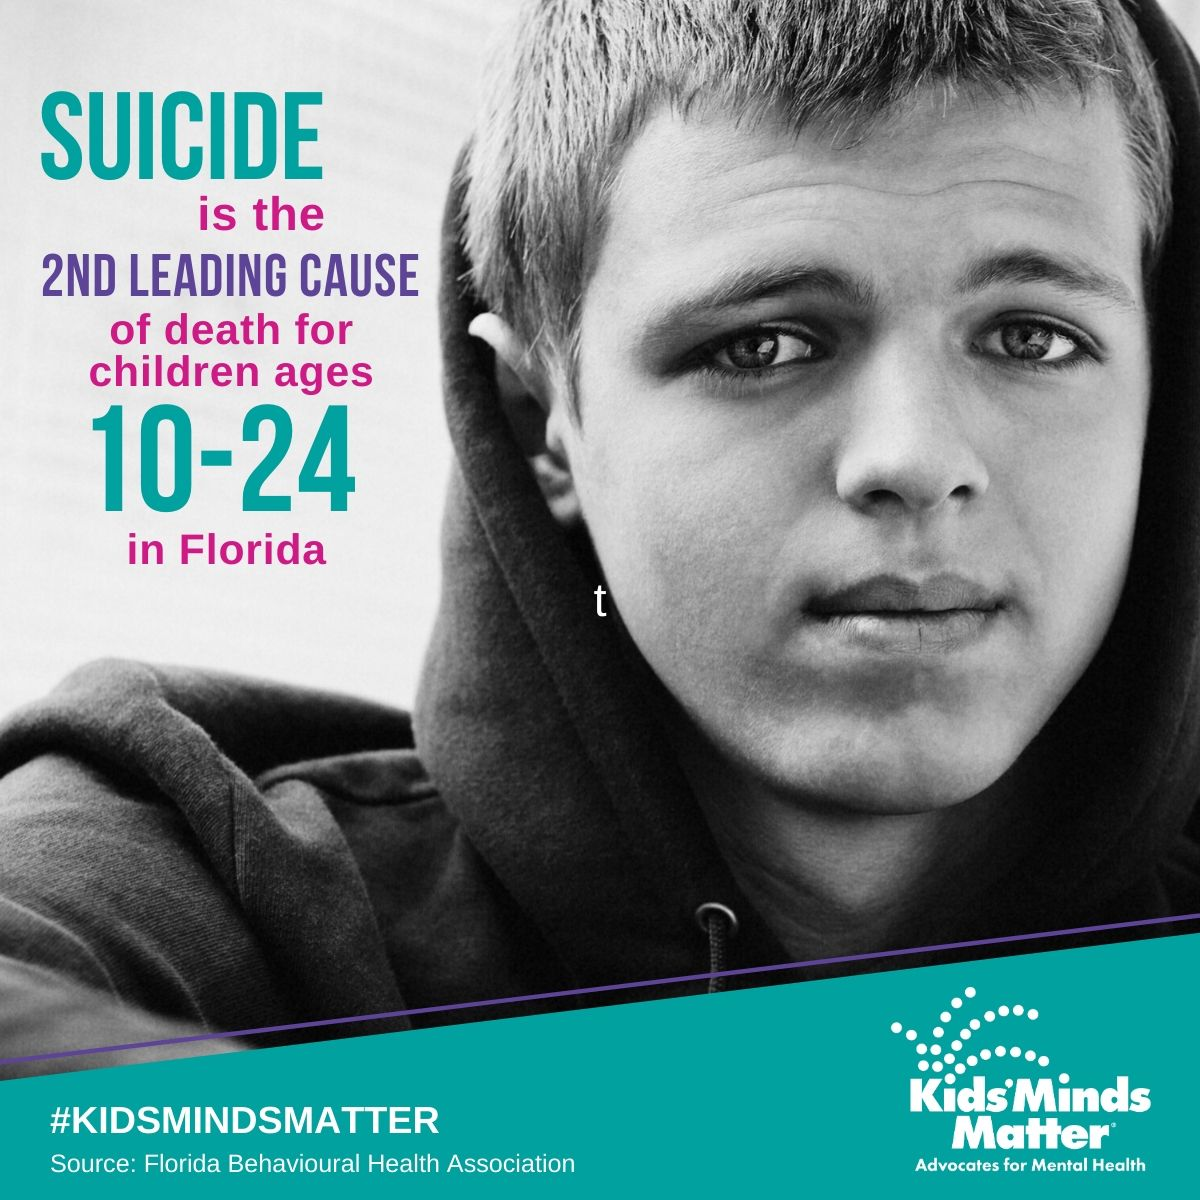 Social Graphics - Share these images and use hashtag #KidsMindsMatter to help further our mission